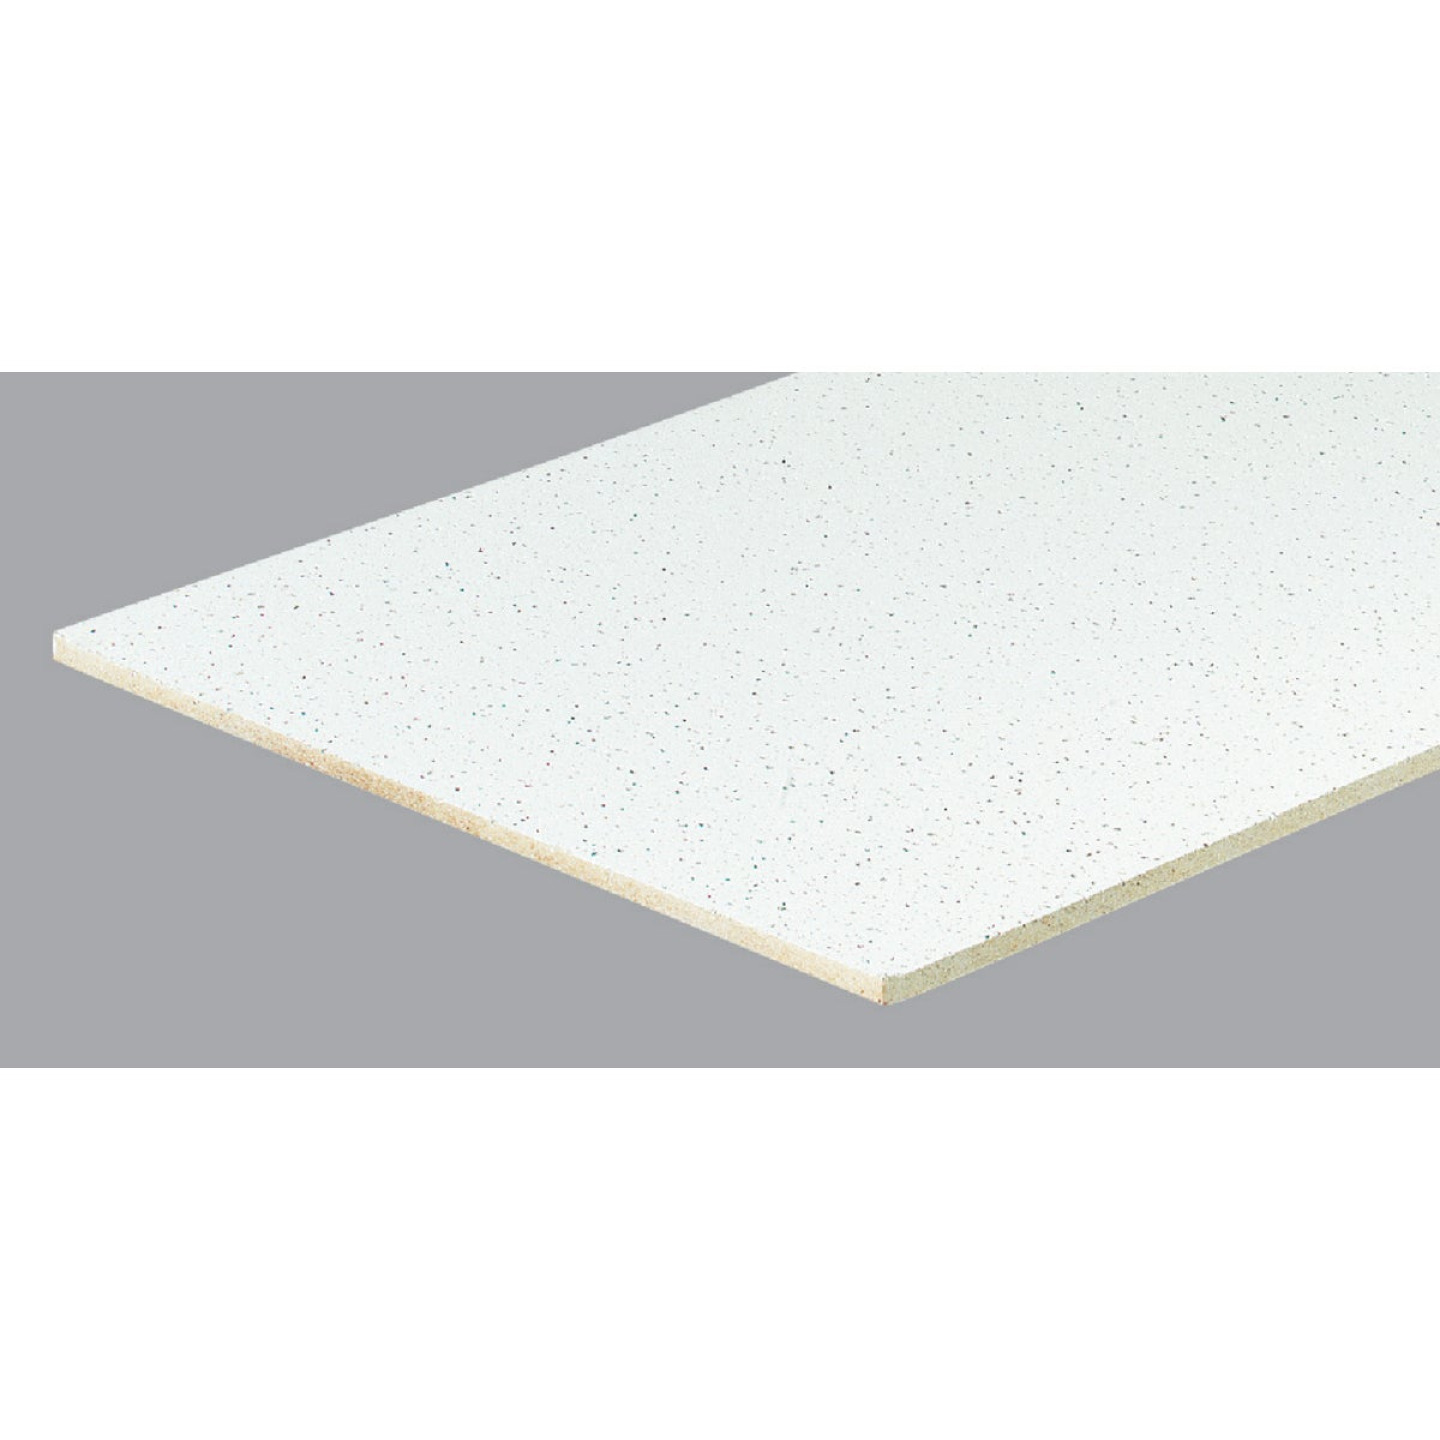 Radar Fissured 2 Ft. x 4 Ft. White Mineral Fiber Square Edge Suspended Ceiling Tile (8-Count) Image 1